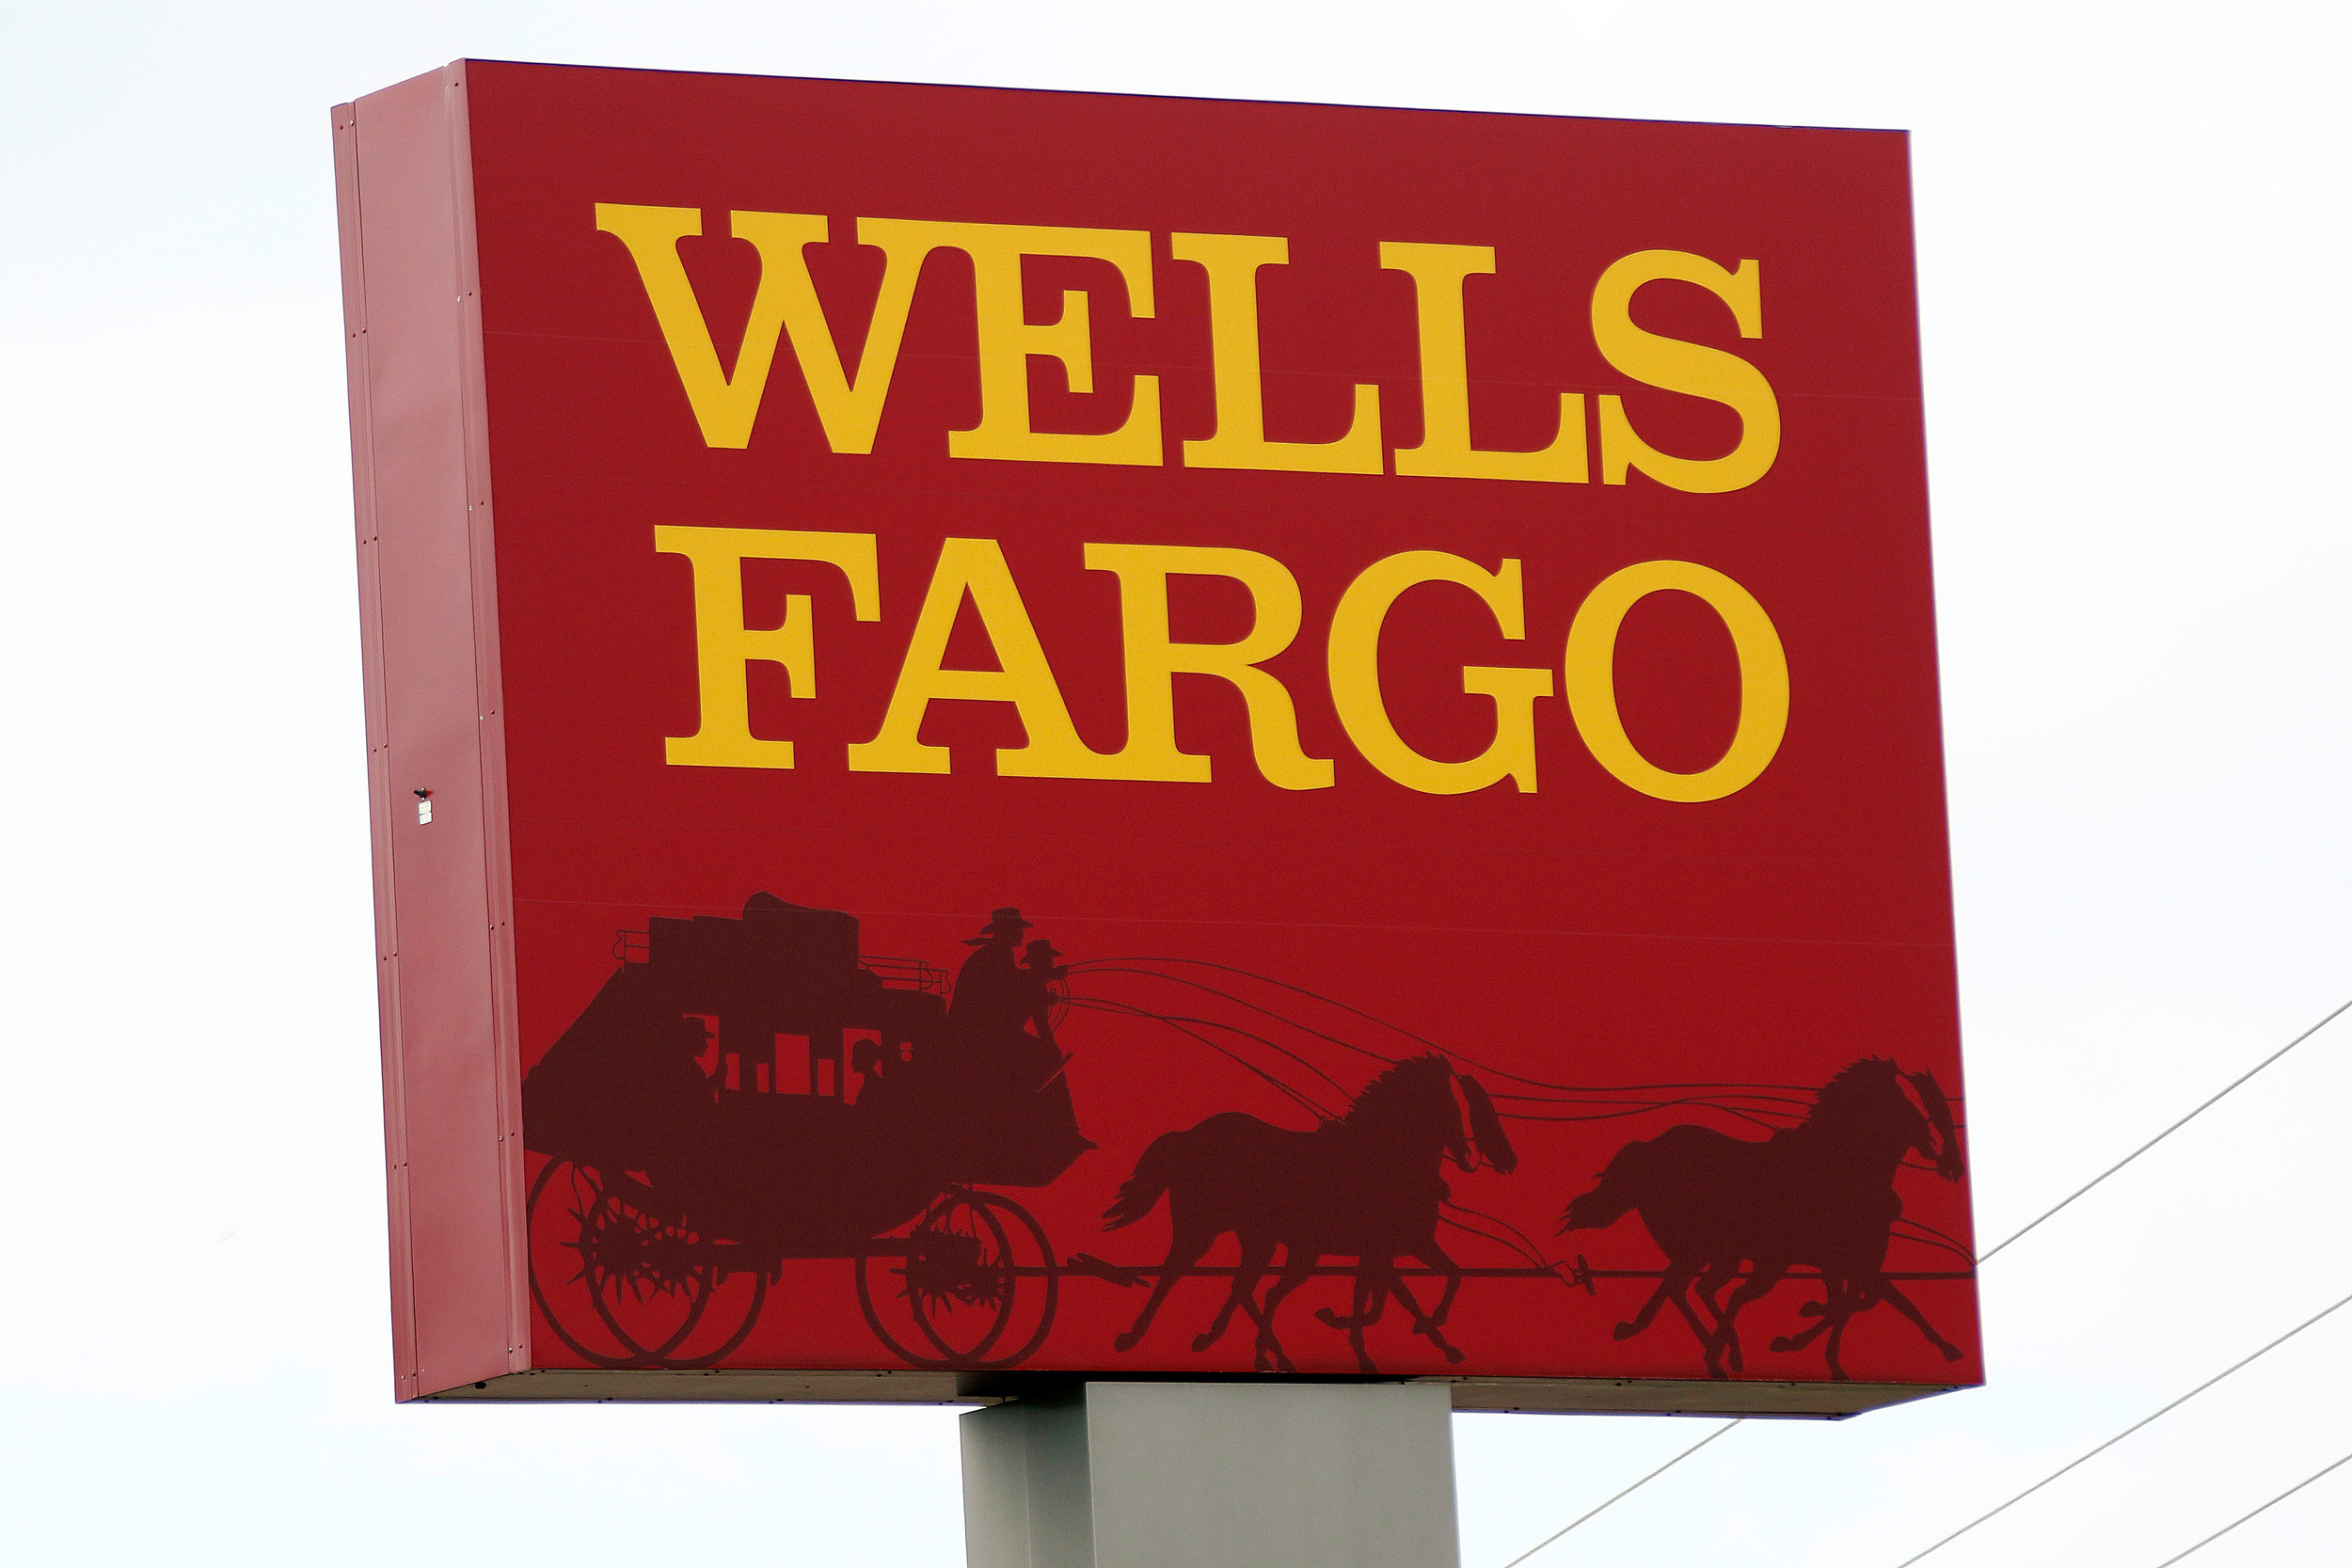 Wells Fargo uncovers 1.4 million more fake accounts